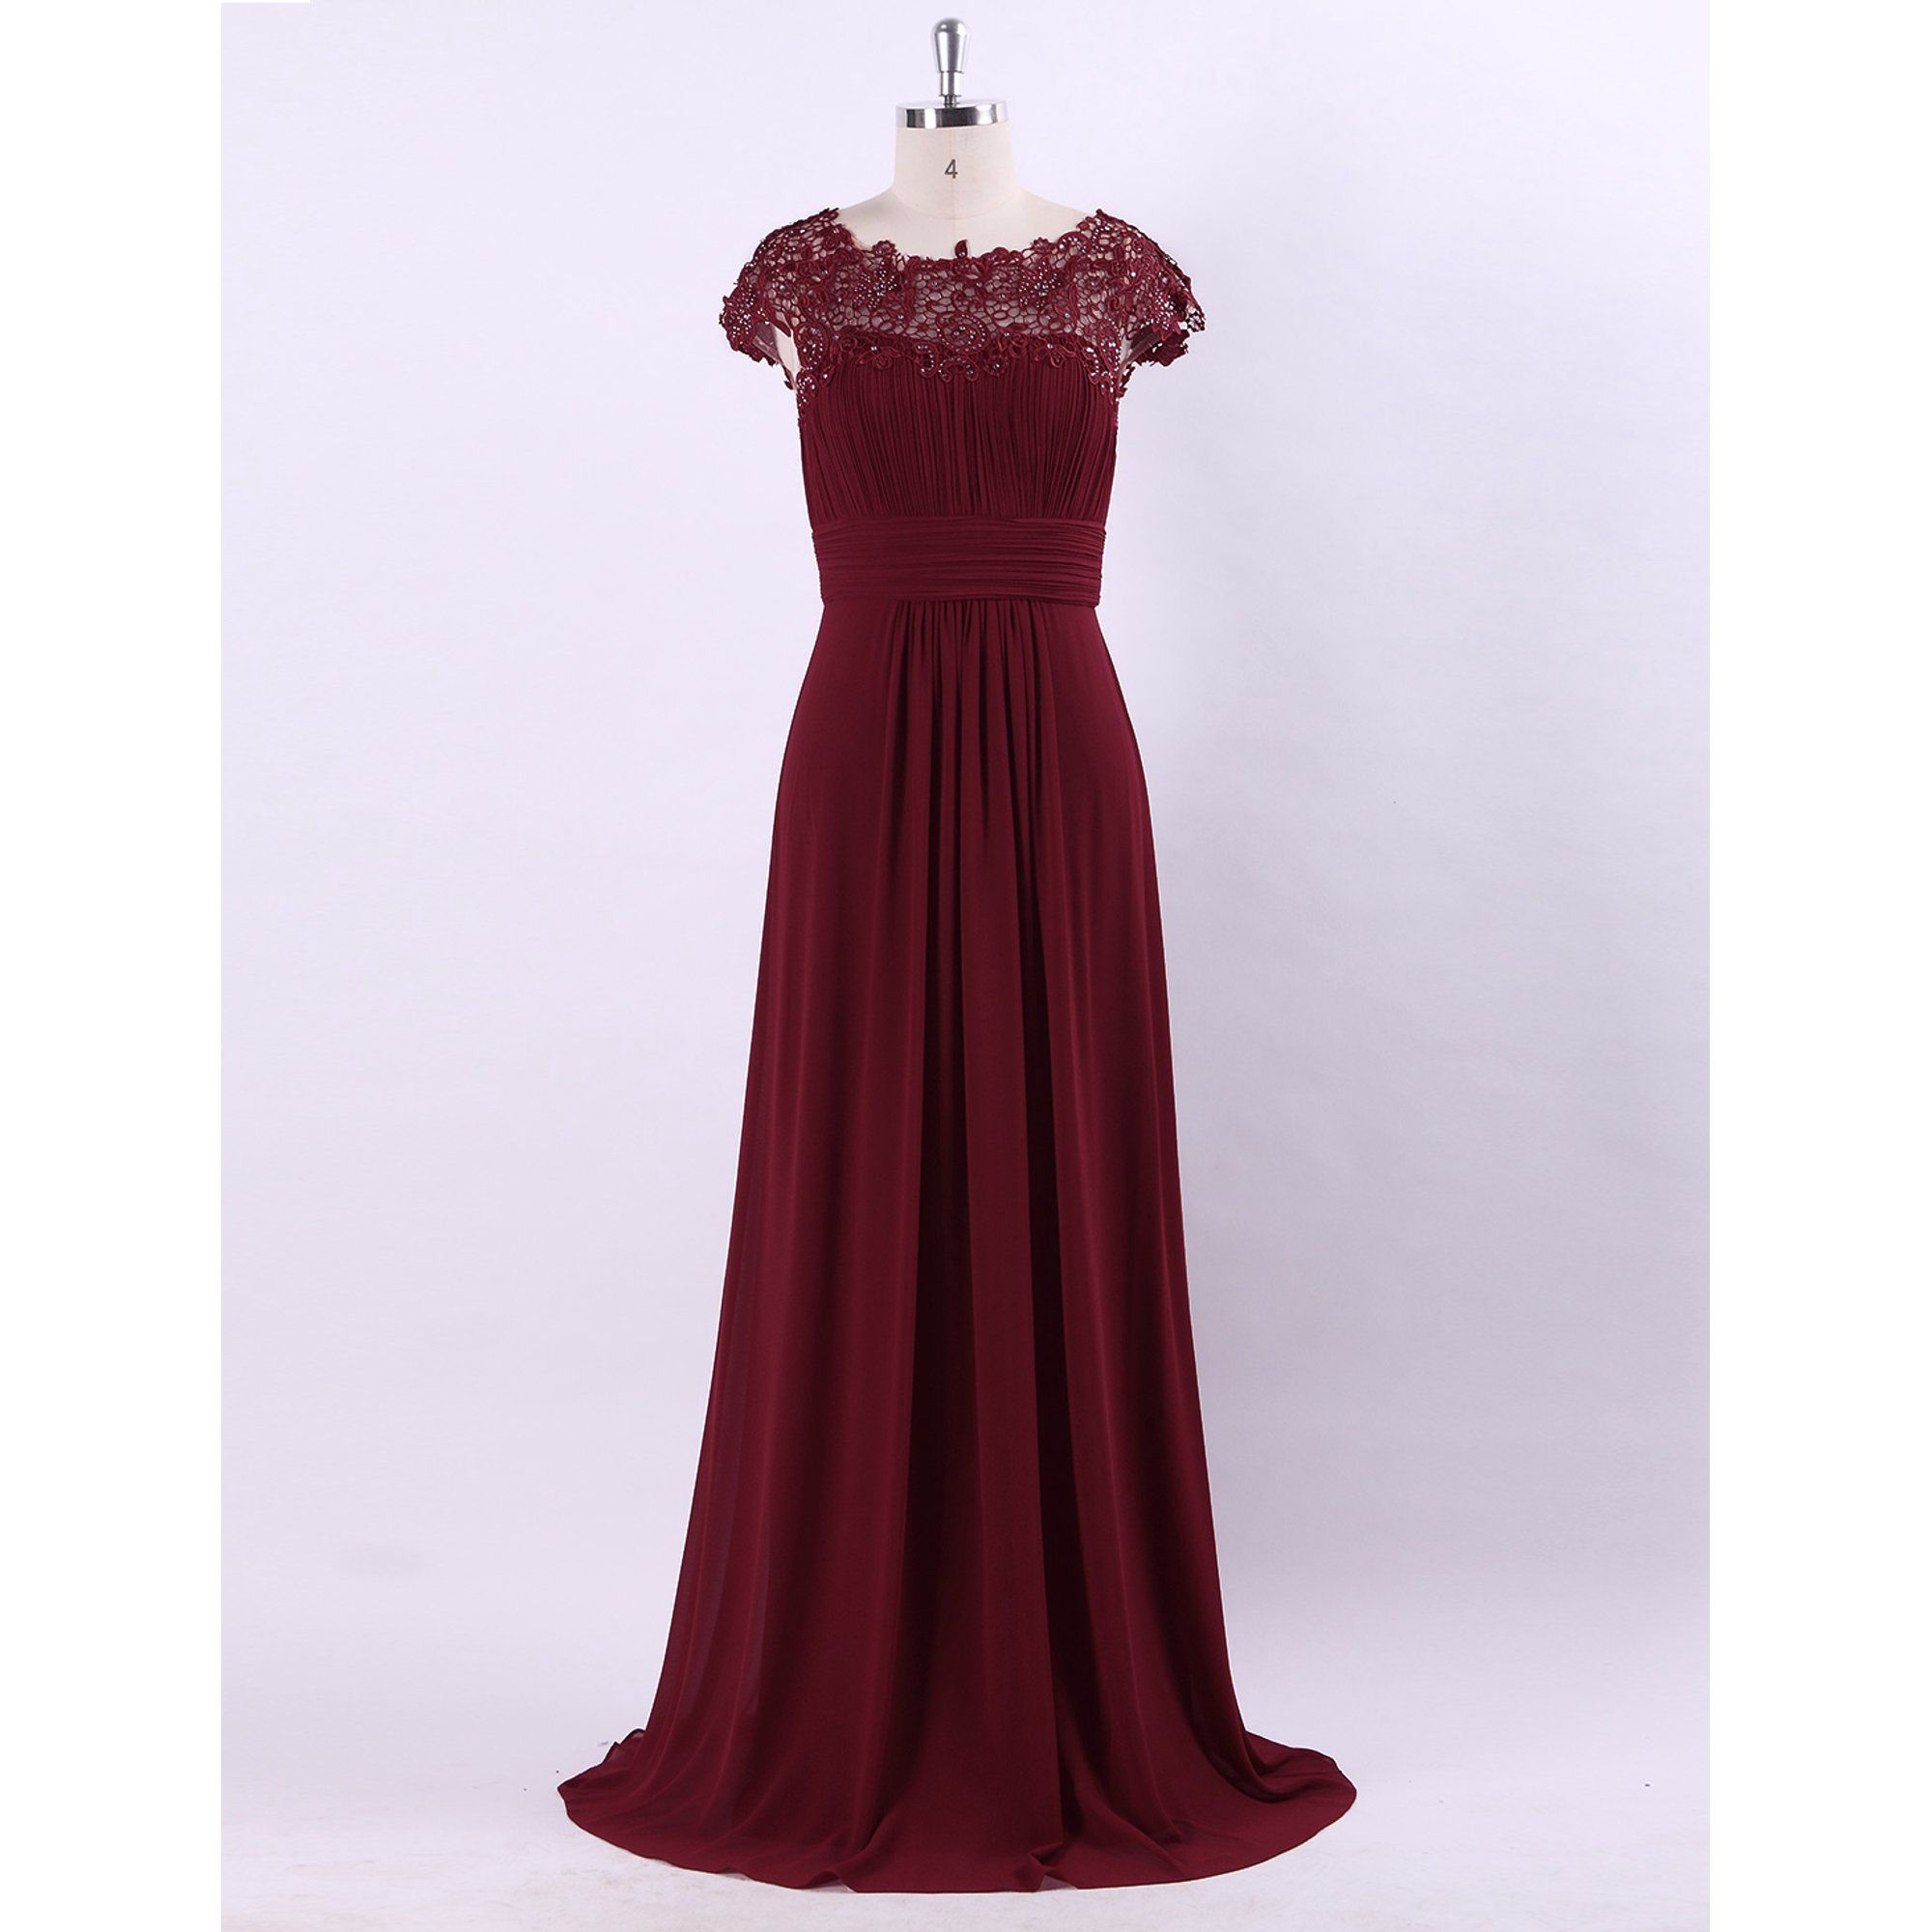 Ever Pretty Ever Pretty Womens Vintage Floral Lacey Prom Dresses For Women 99933 Burgundy Us4 Walmart Com Bridesmaid Dresses Prom Bridesmaid Dress Sizes Burgundy Bridesmaid Dresses [ 2000 x 2000 Pixel ]